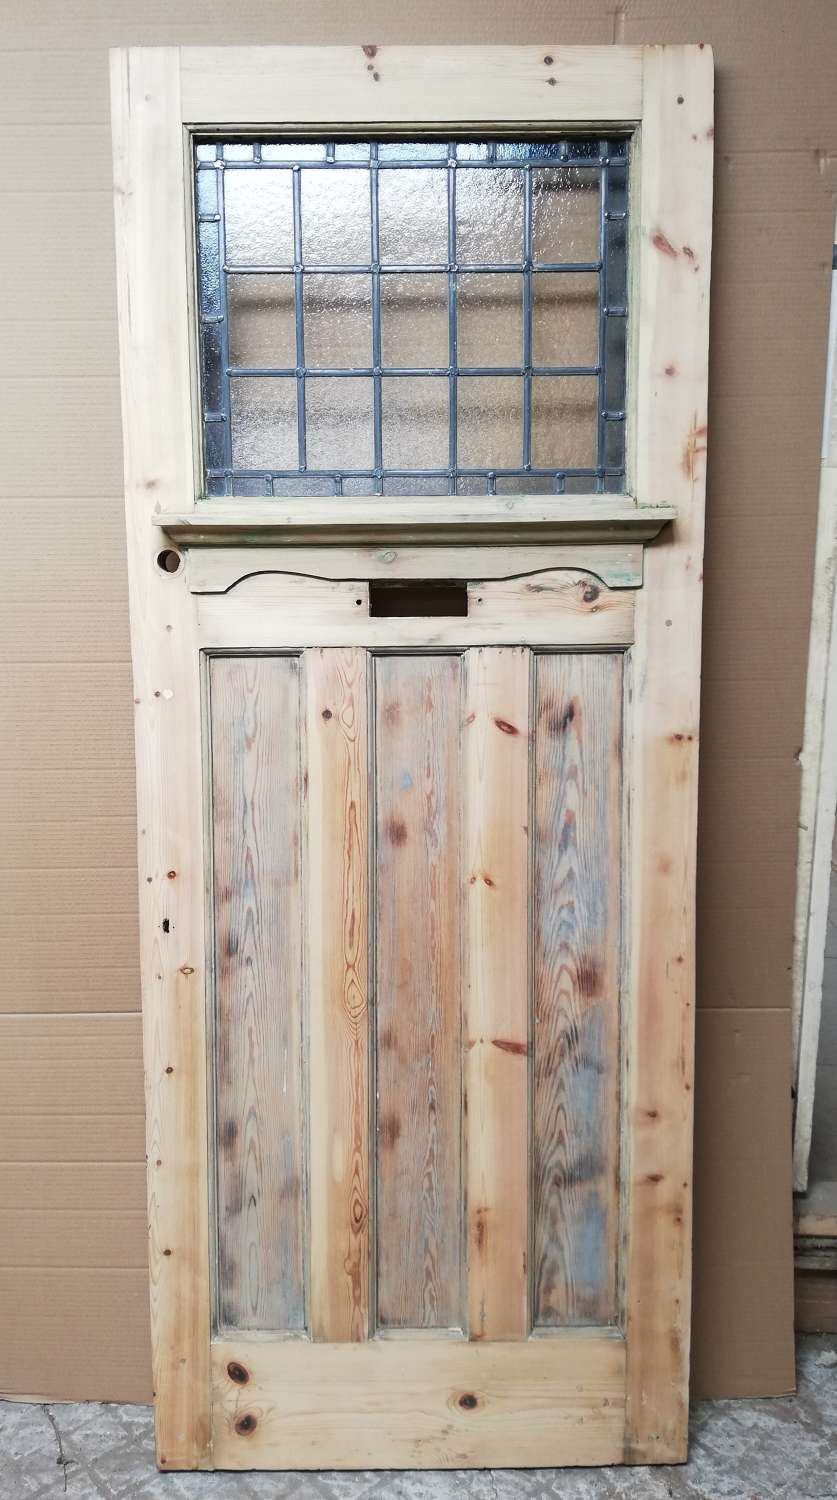 DE0856 EDWARDIAN PINE FRONT DOOR WITH STAINED GLASS PANEL